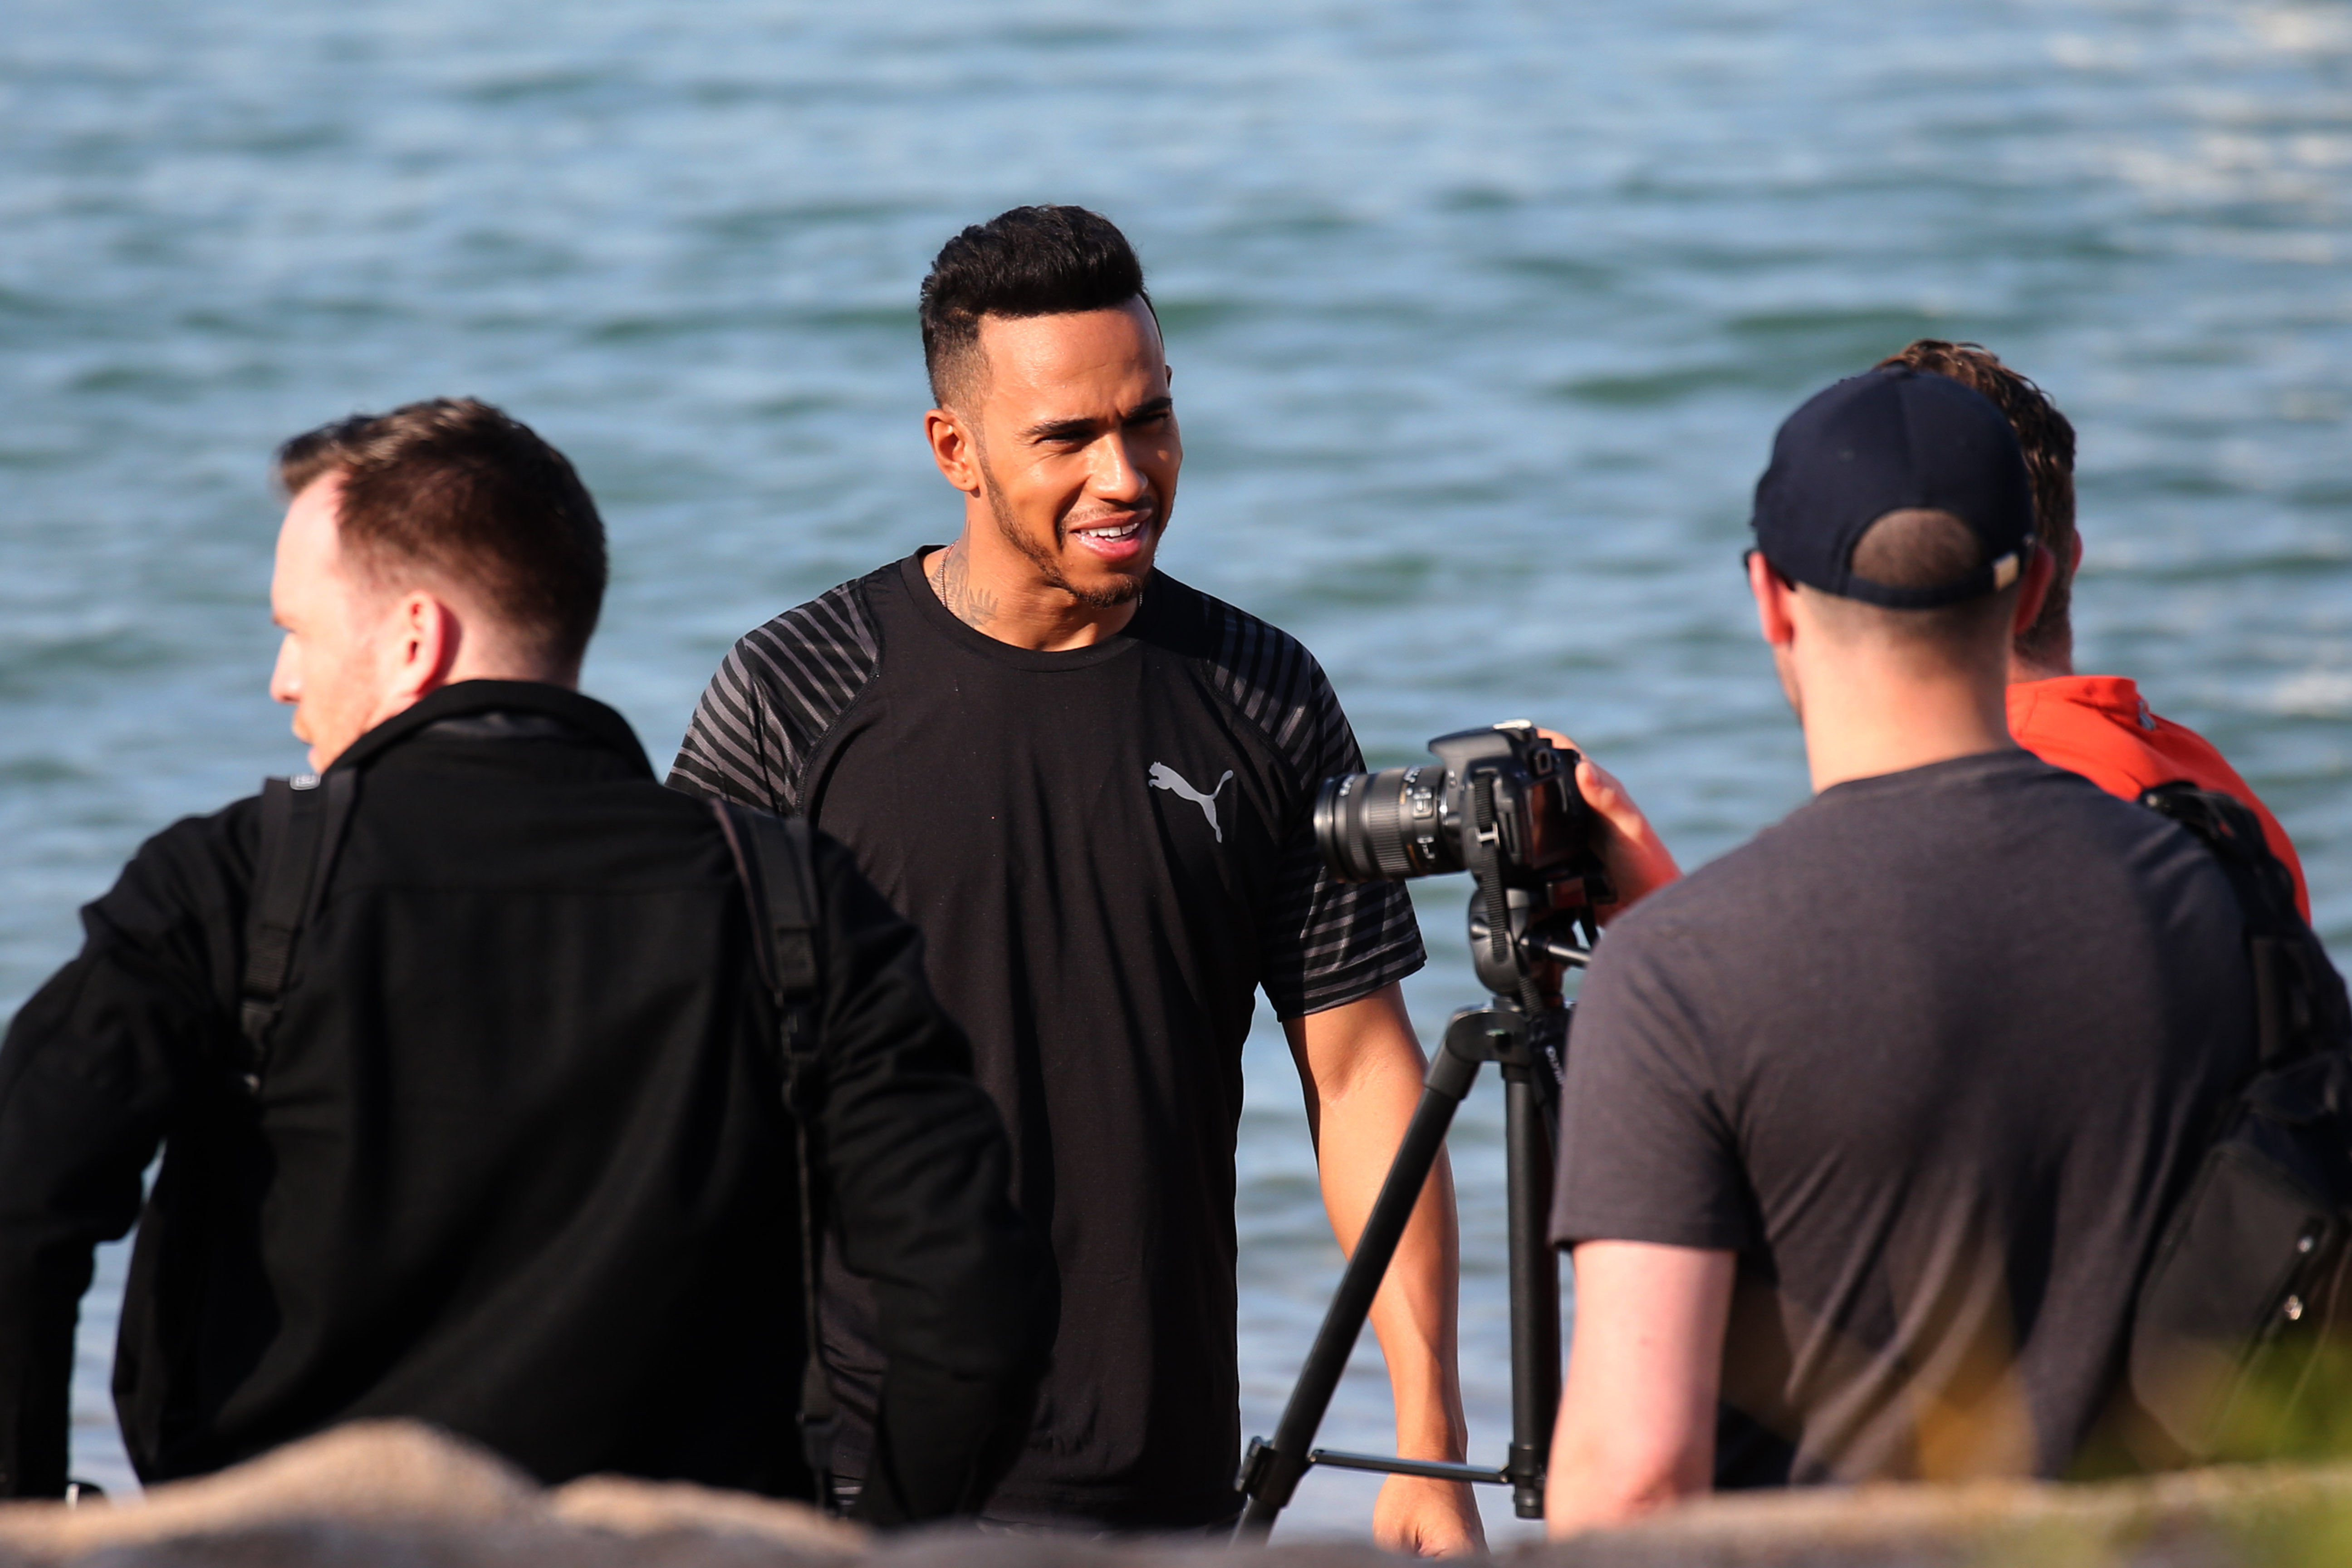 Lewis Hamilton seen during a fitness photo shoot at the beach